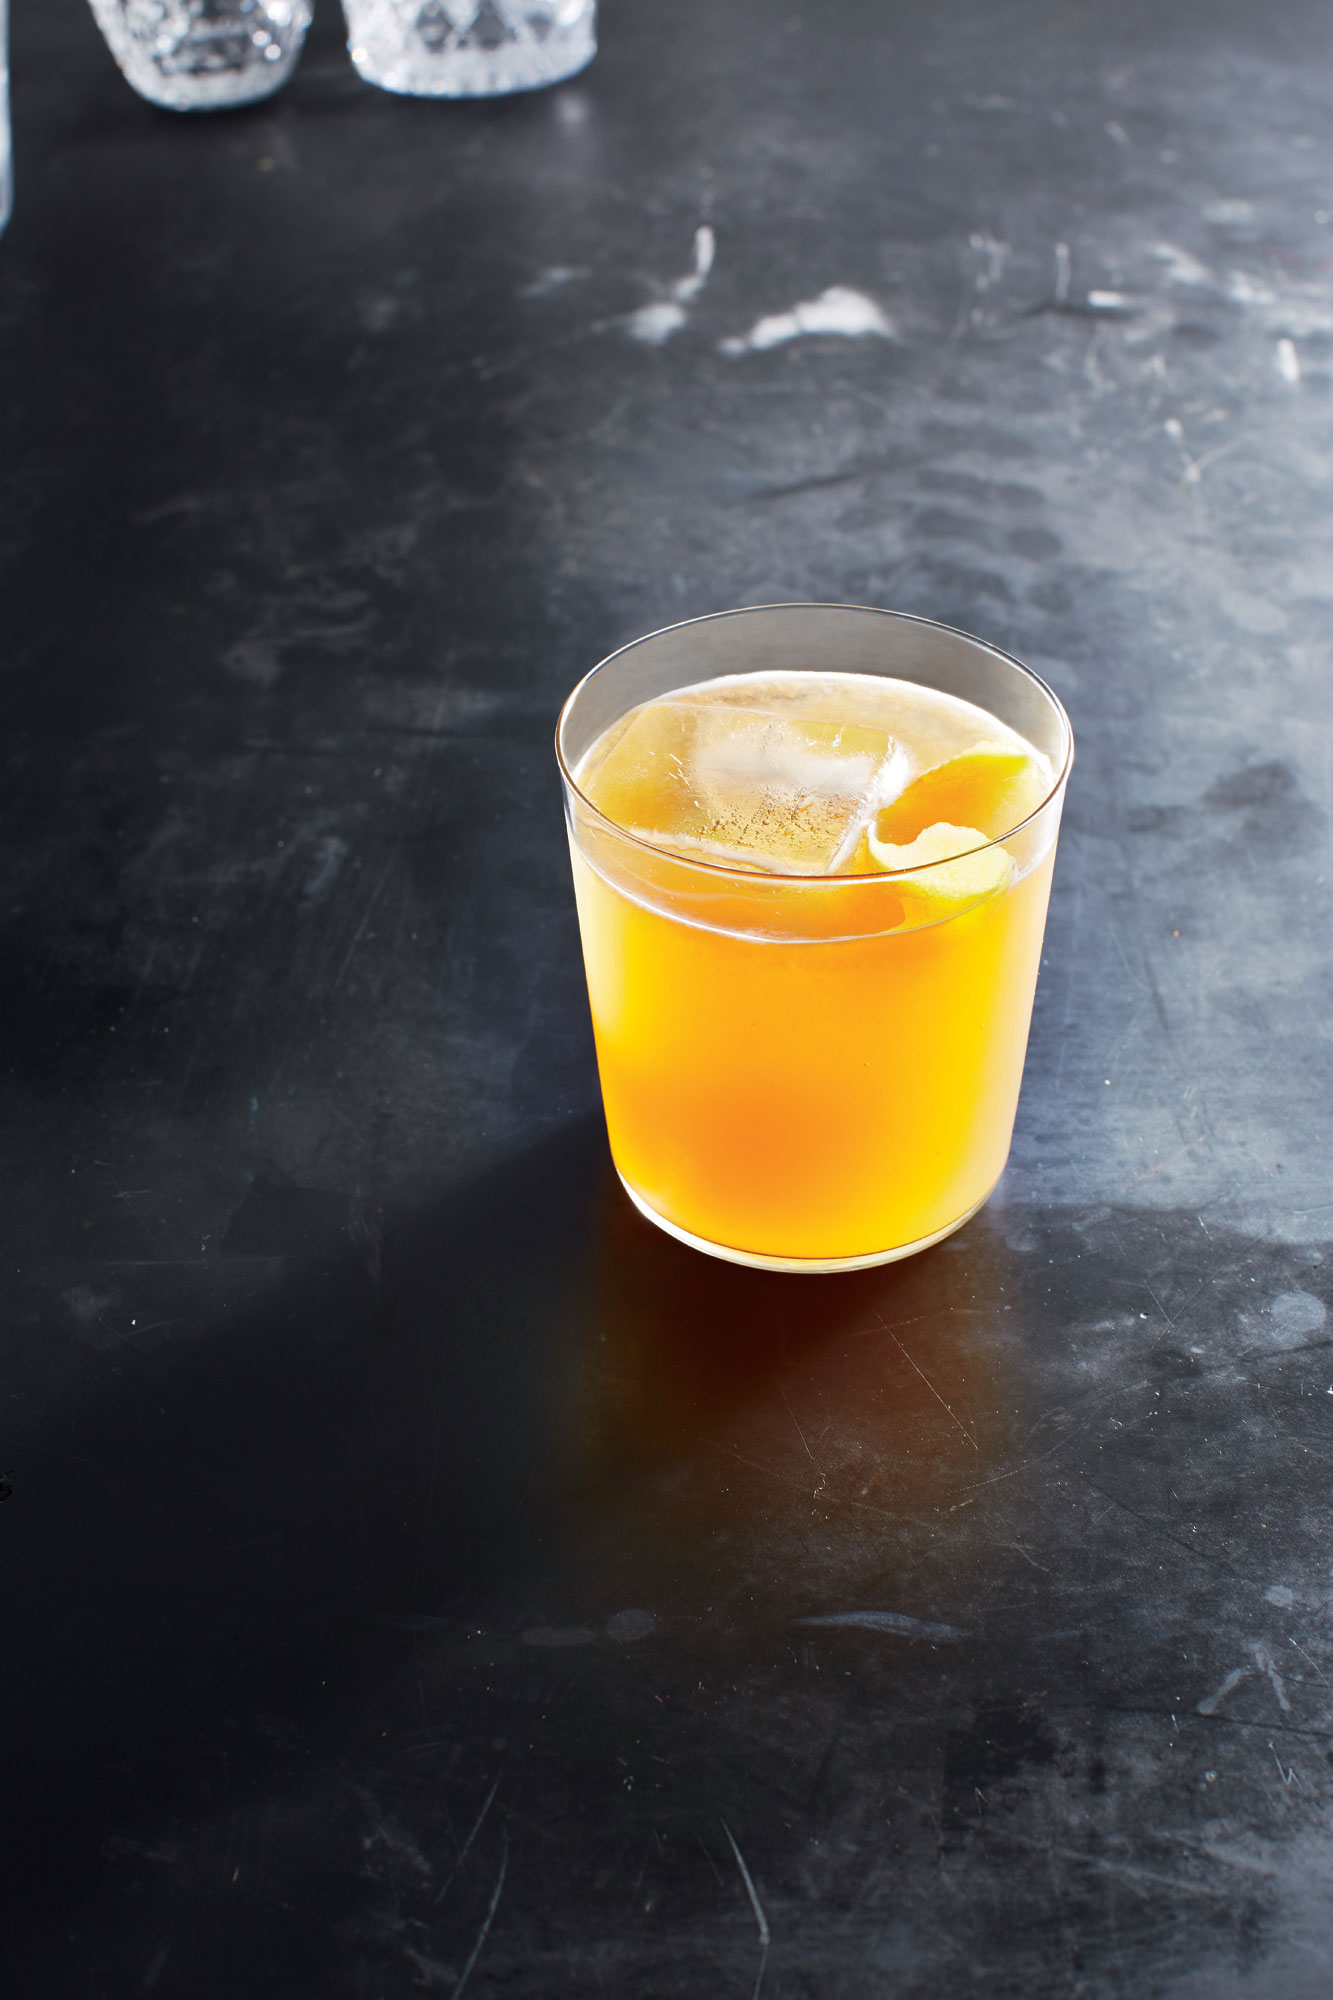 ck- Spiced Whiskey Sour